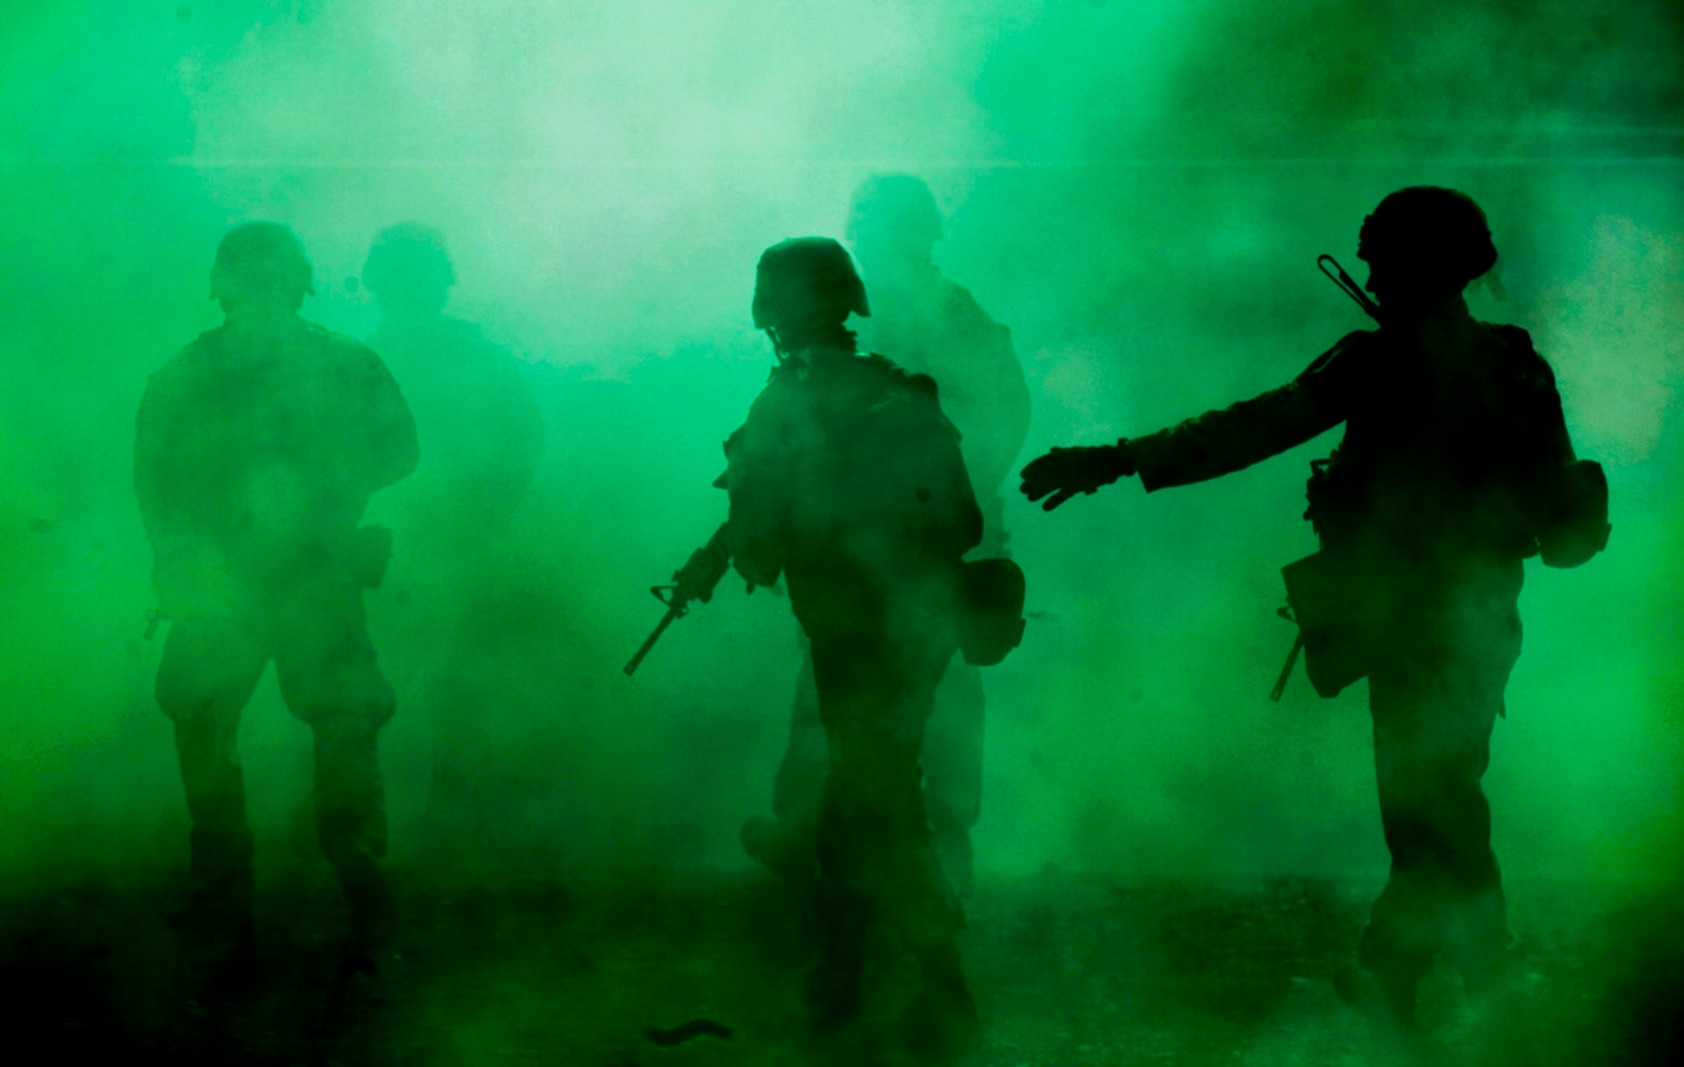 Marines with Company A, 1st Battalion, 7th Marine Regiment, use green smoke to provide concealment as they move through the simulated town during a Military Operation on Urban Terrain exercise aboard Marine Corps Air Ground Combat Center Twentynine Palms, California, Aug. 11, 2015. The MOUT exercise was part of an Integrated Training Exercise that allowed the Marines with Animal Company to showcase their different capabilities in preparation for future deployments.